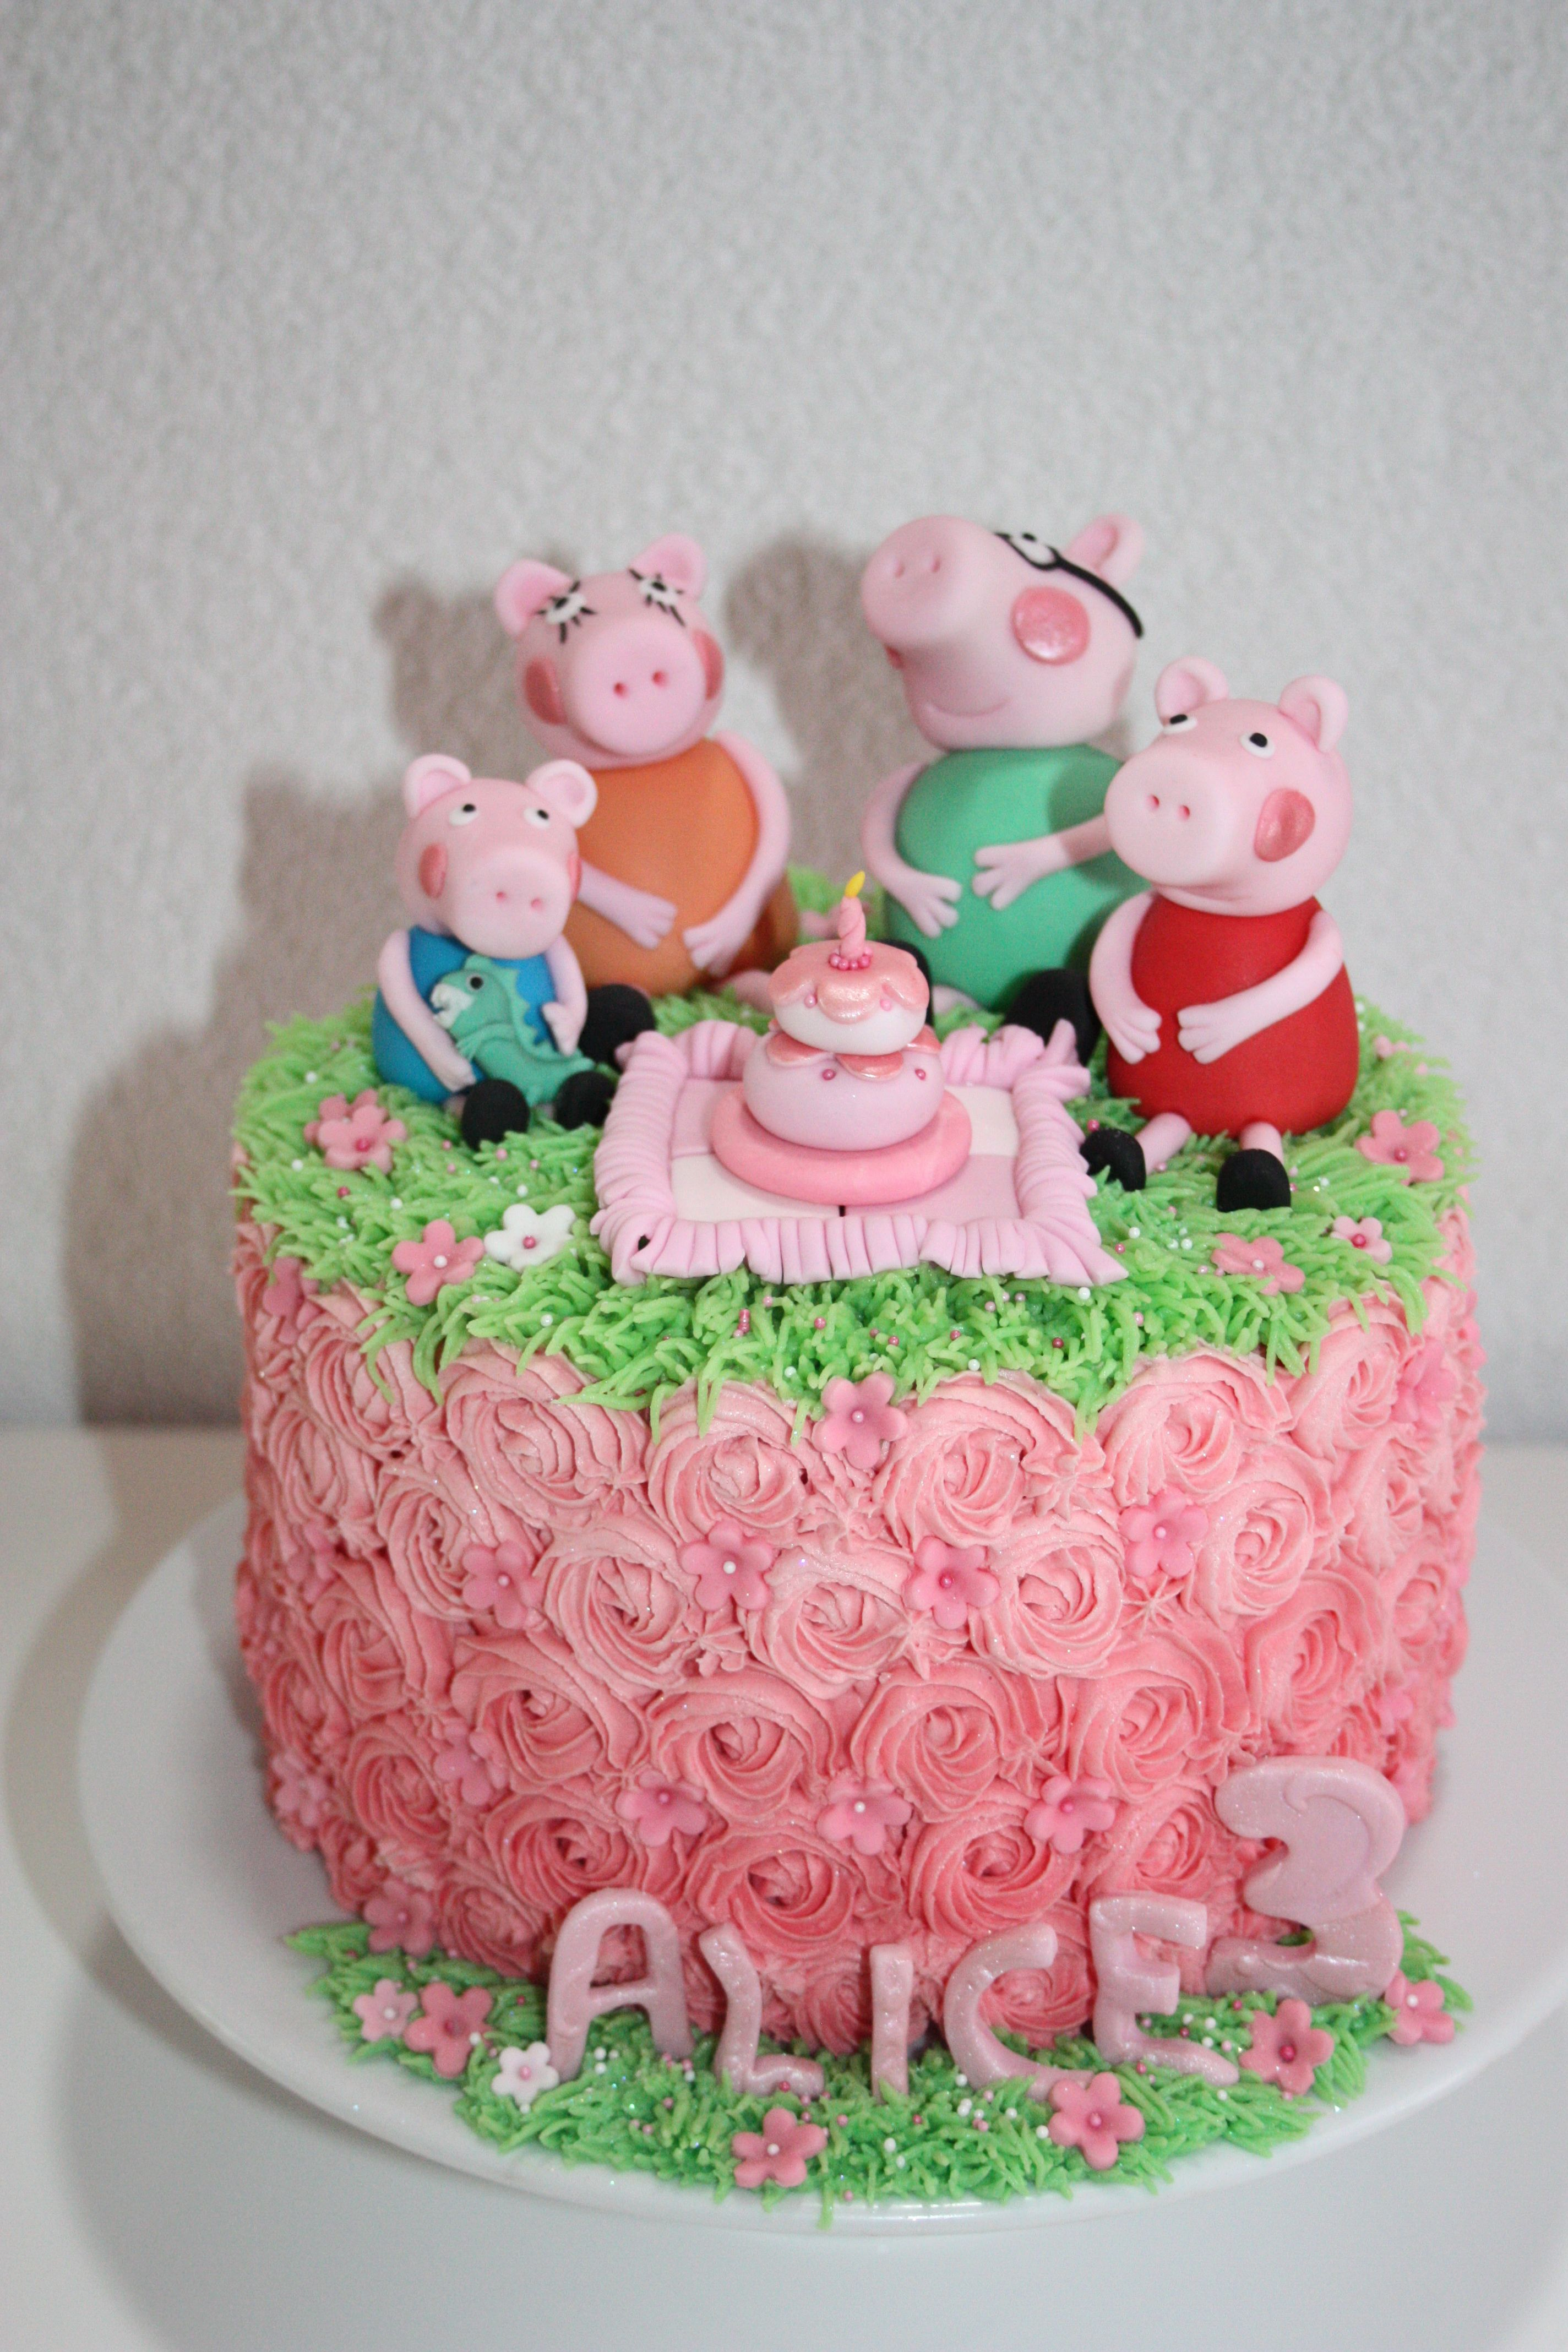 Pin On Lealu Sweets Cakes